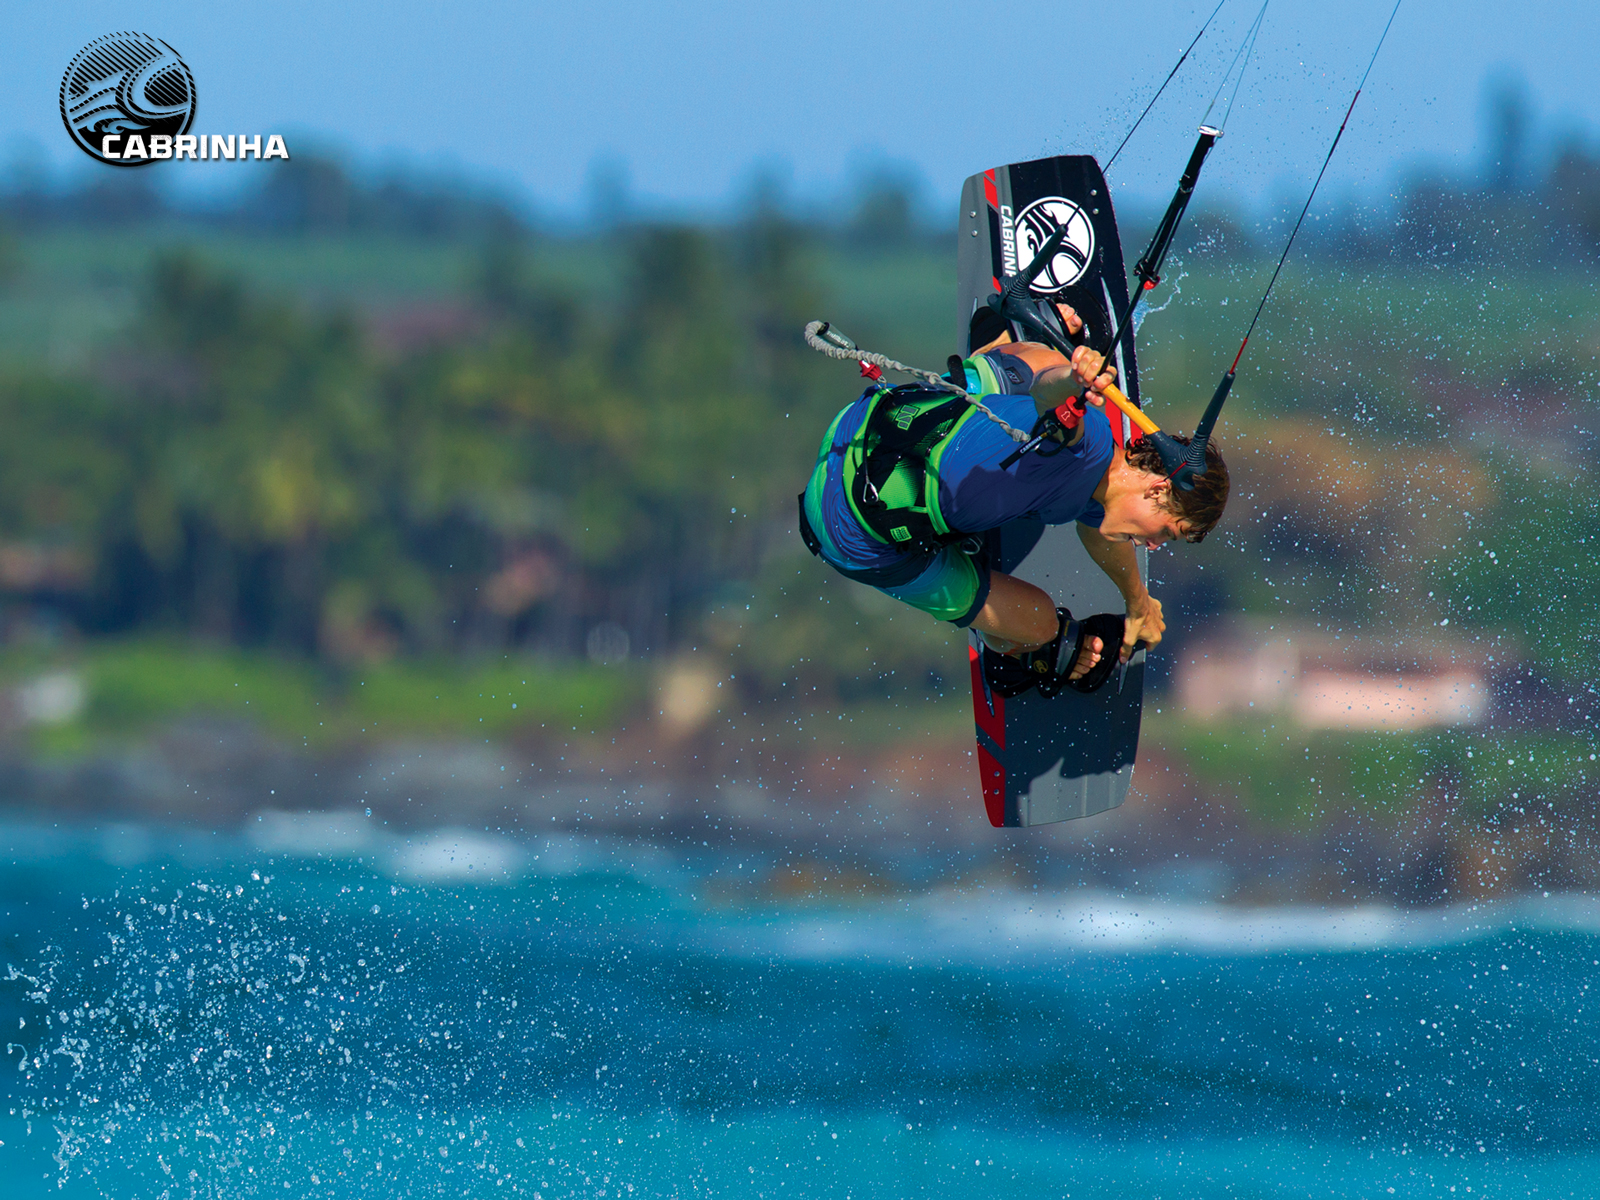 kitesurf wallpaper image - Liam Whaley on the 2015 Cabrinha Ace twintip with a nice board grab. - in resolution: Standard 4:3 1600 X 1200